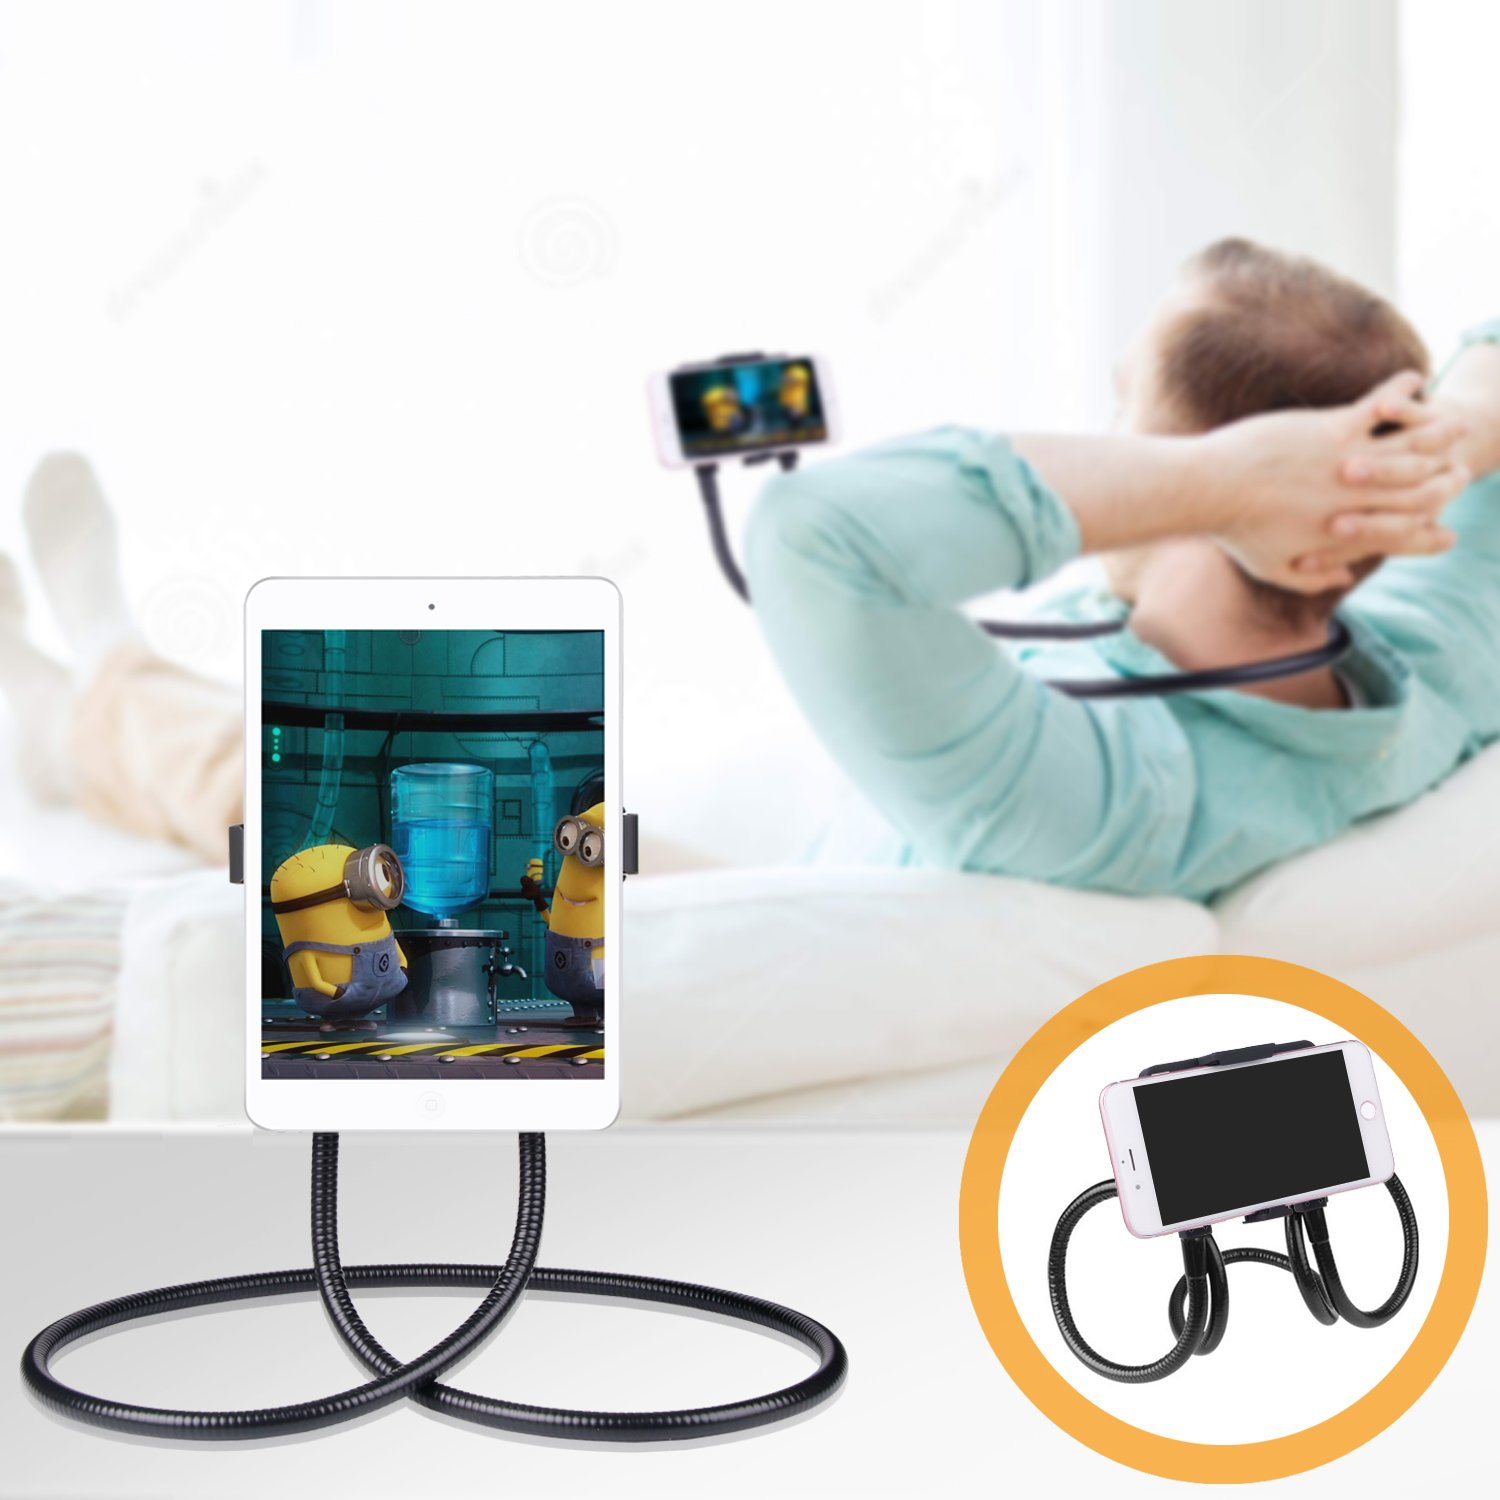 B-Land Cell Phone Holder, Tablet Holder iPad Stand Universal Phone Stand, Lazy Bracket, DIY Free Rotating Gooseneck Mounts with Multiple Function by B-Land